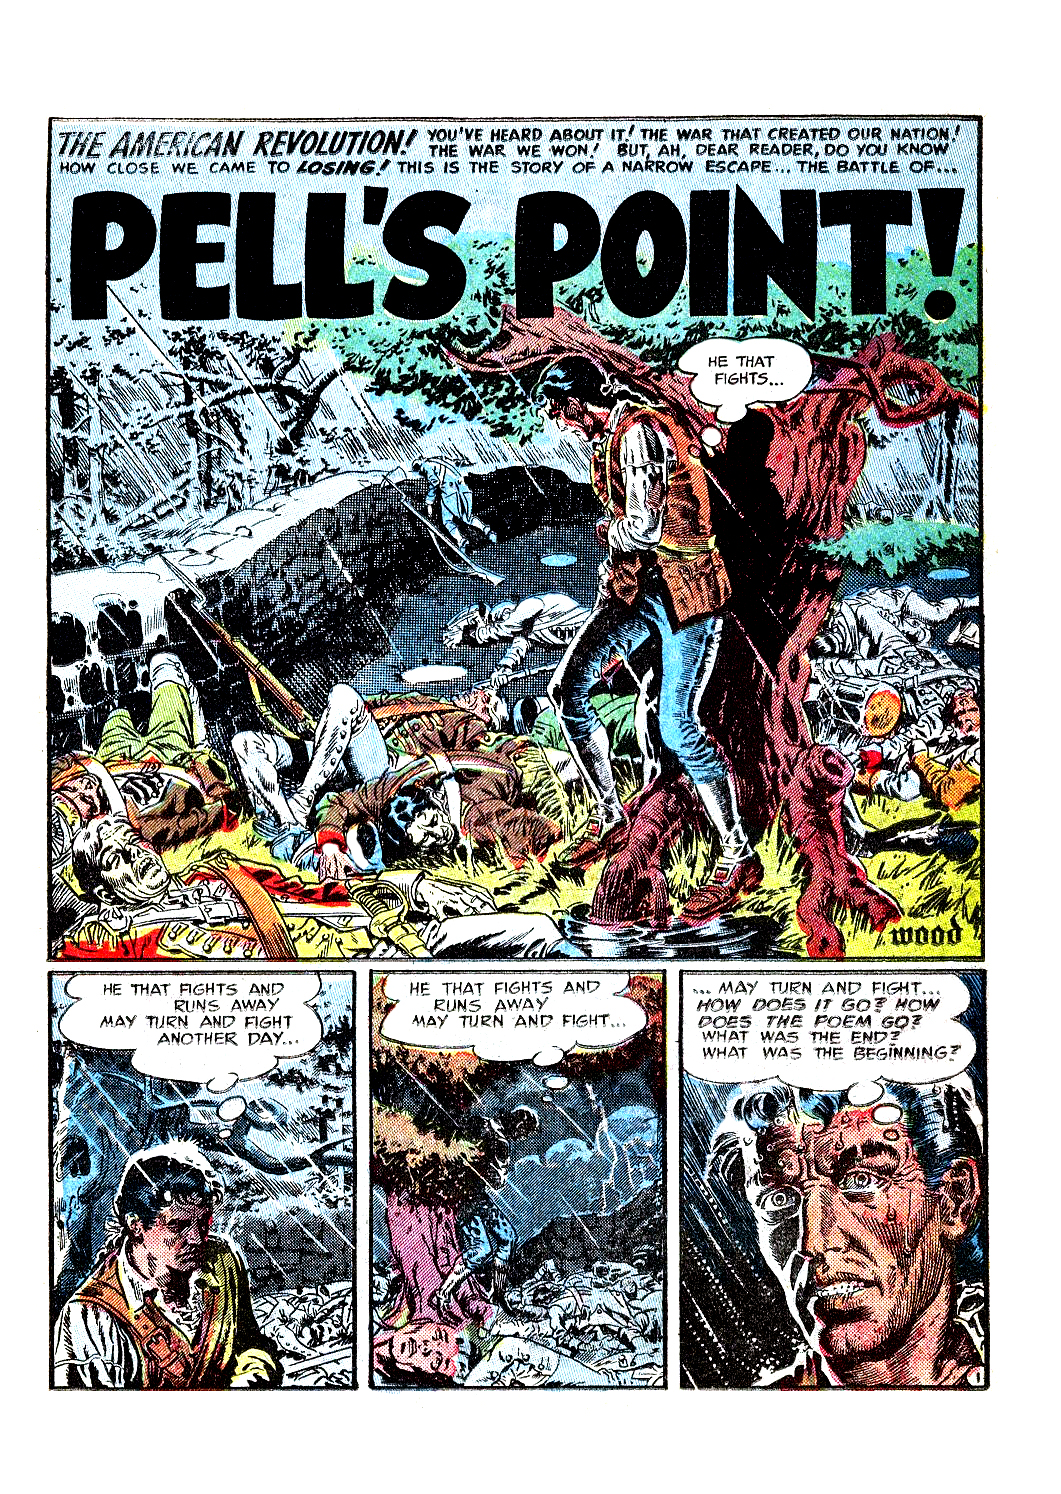 Pell's Point! from Two-Fisted Tales # 28-1952